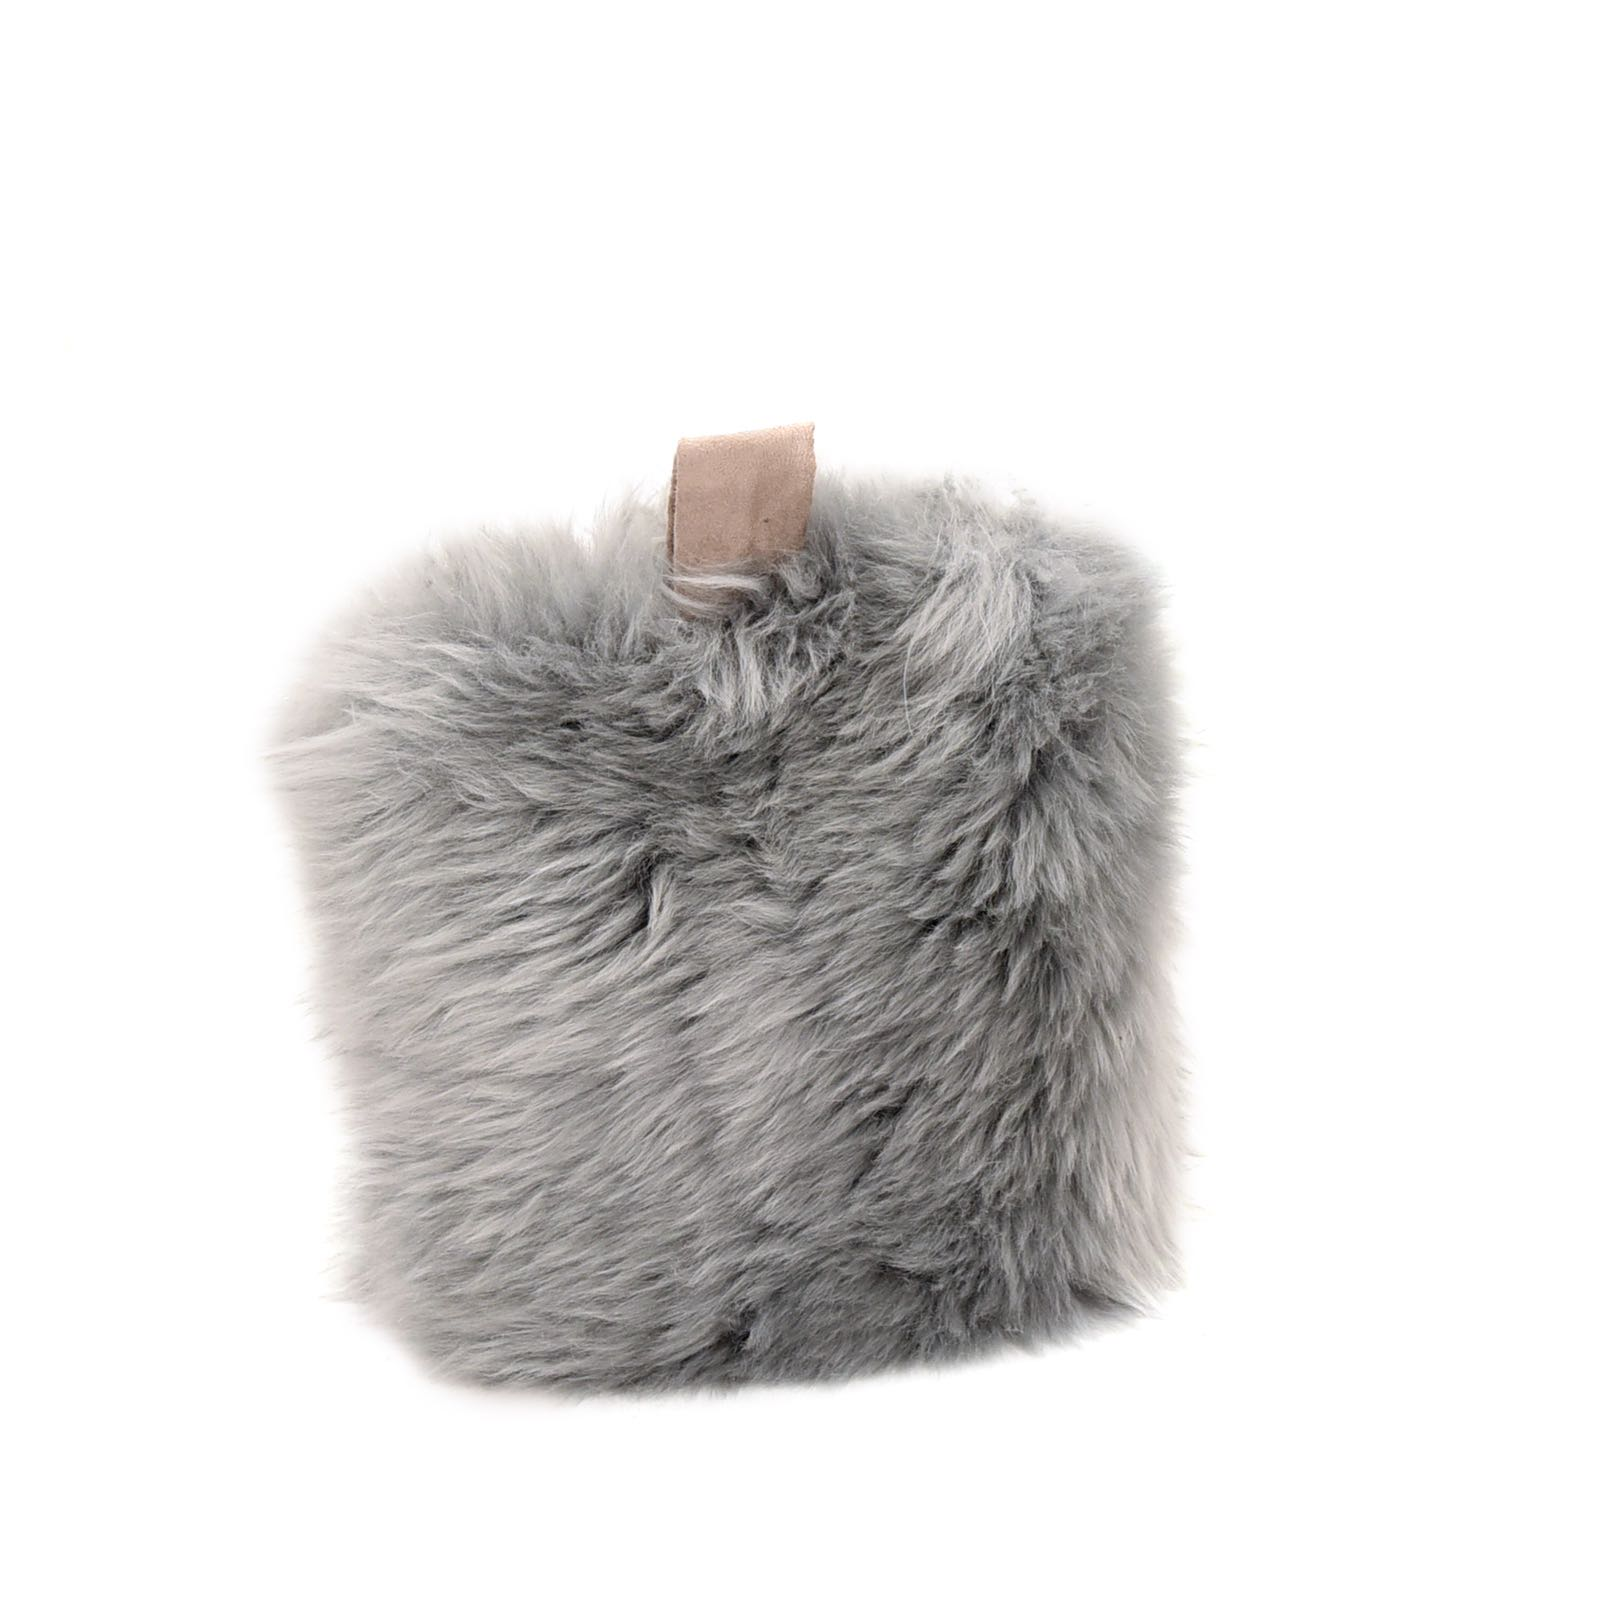 Baa Stool flock stop in silver sheepskin 25cm x 30cm